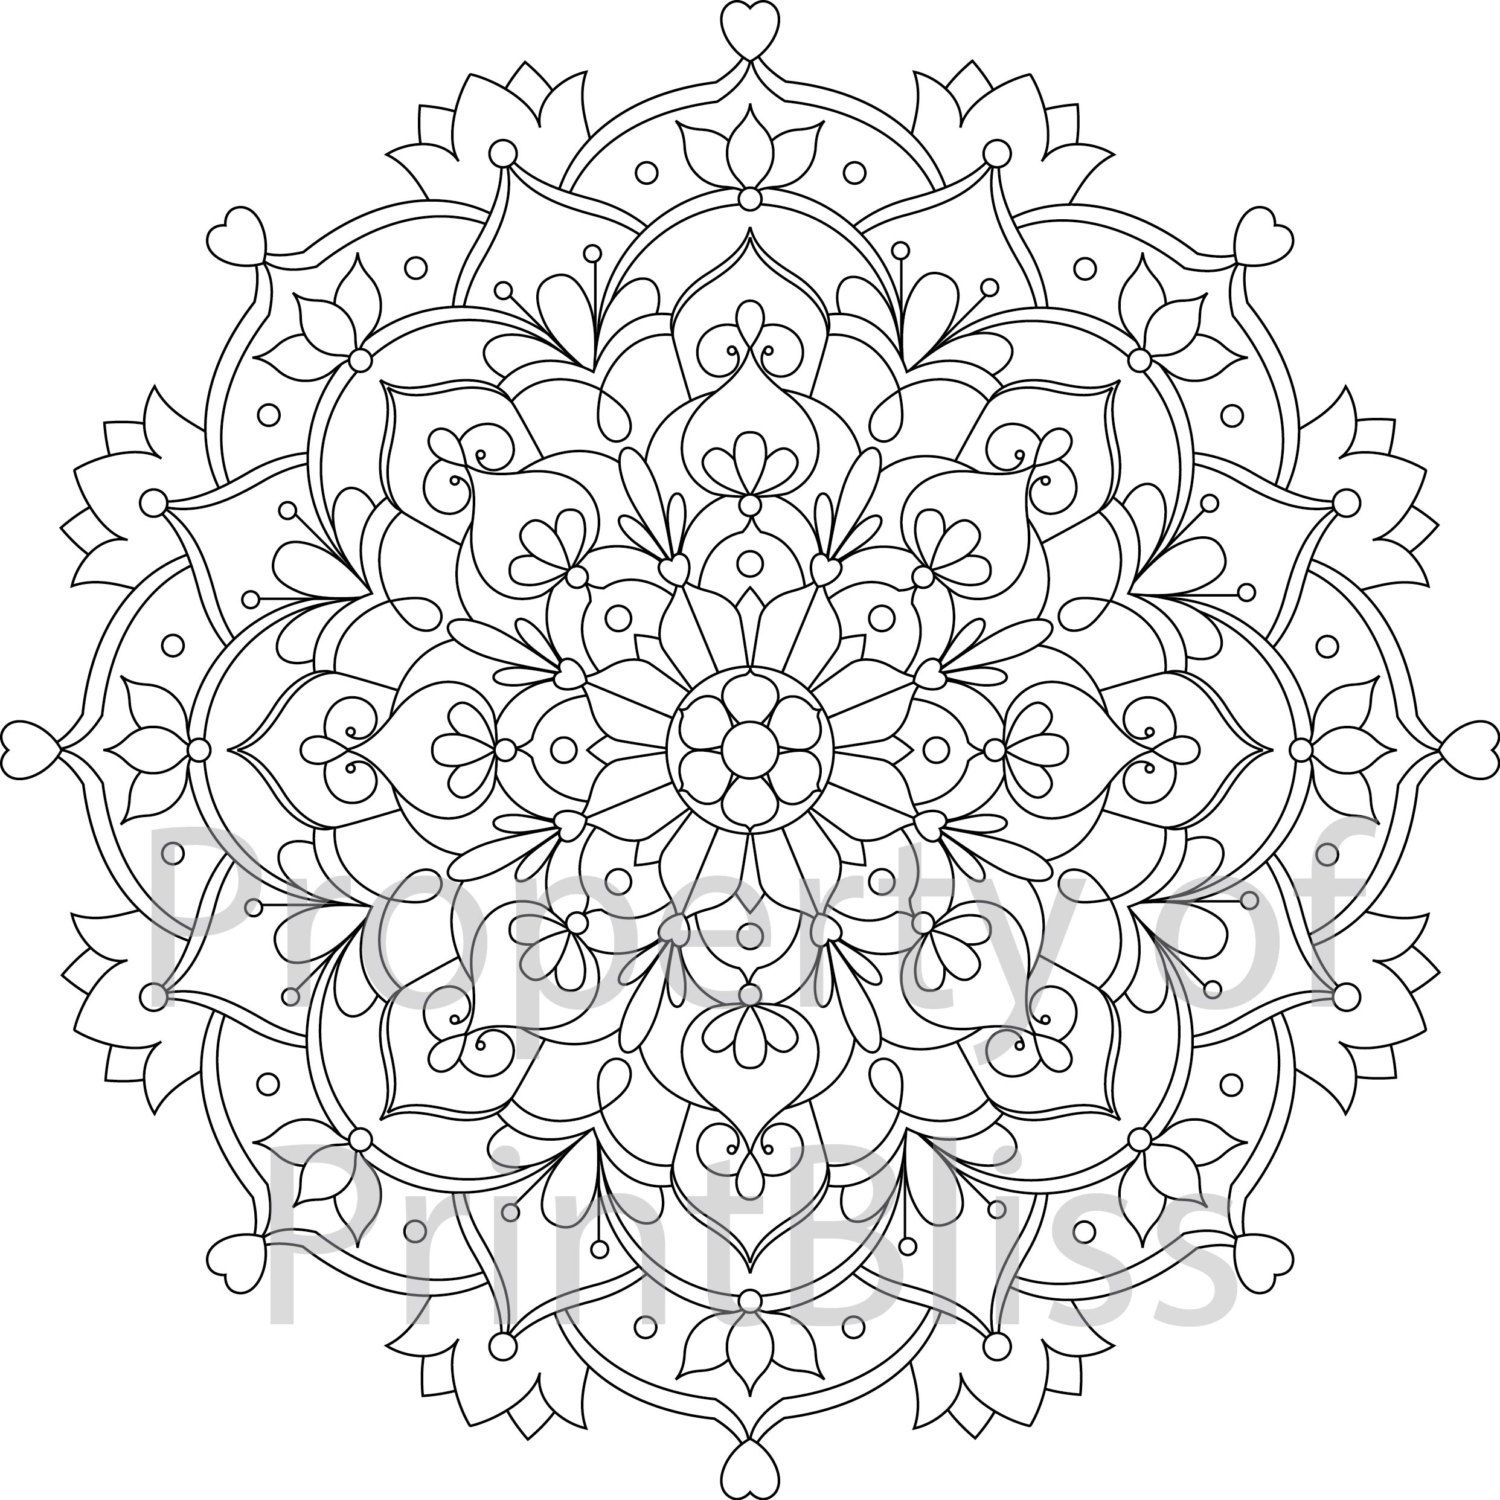 29 Flower Mandala printable coloring page by PrintBliss